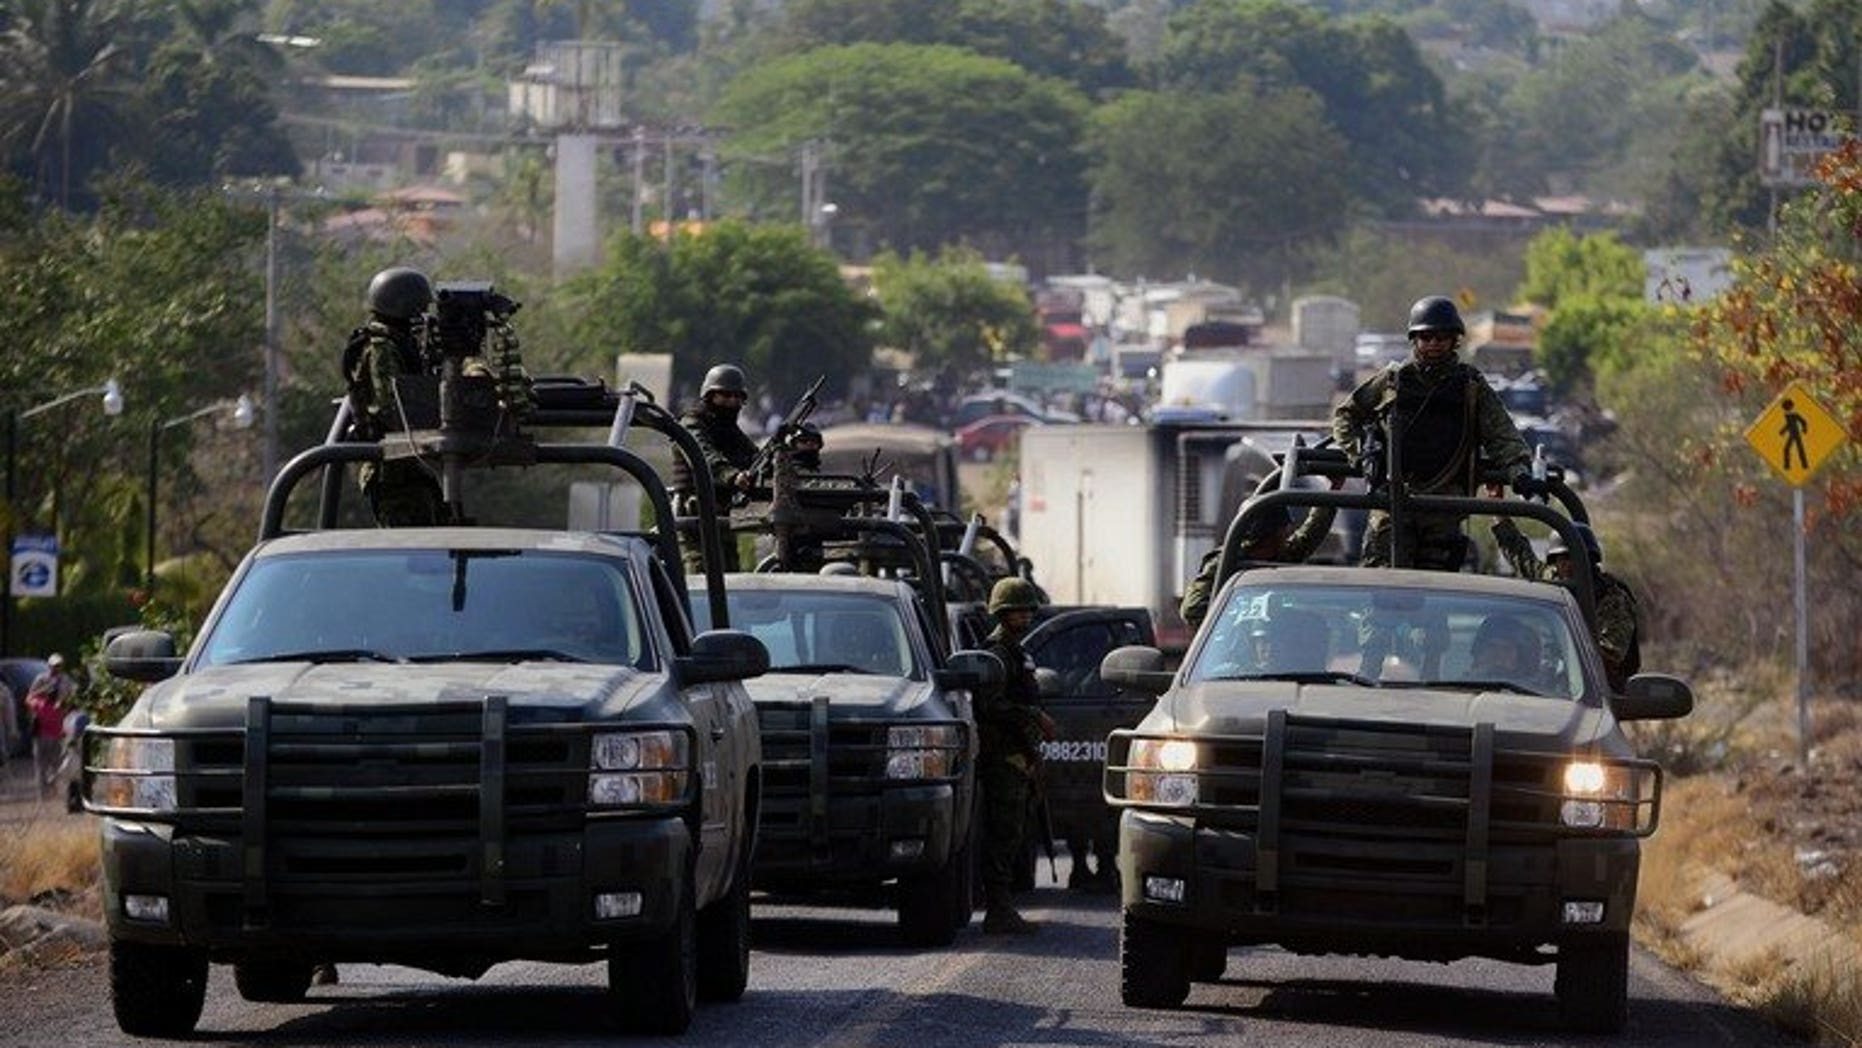 Soldiers of Mexican Army patrol in Michoacan State, Mexico on May 22, 2013. Security forces in the Mexican state plagued by drug violence were working to restore order on Wednesday after clashes which left 22 dead.